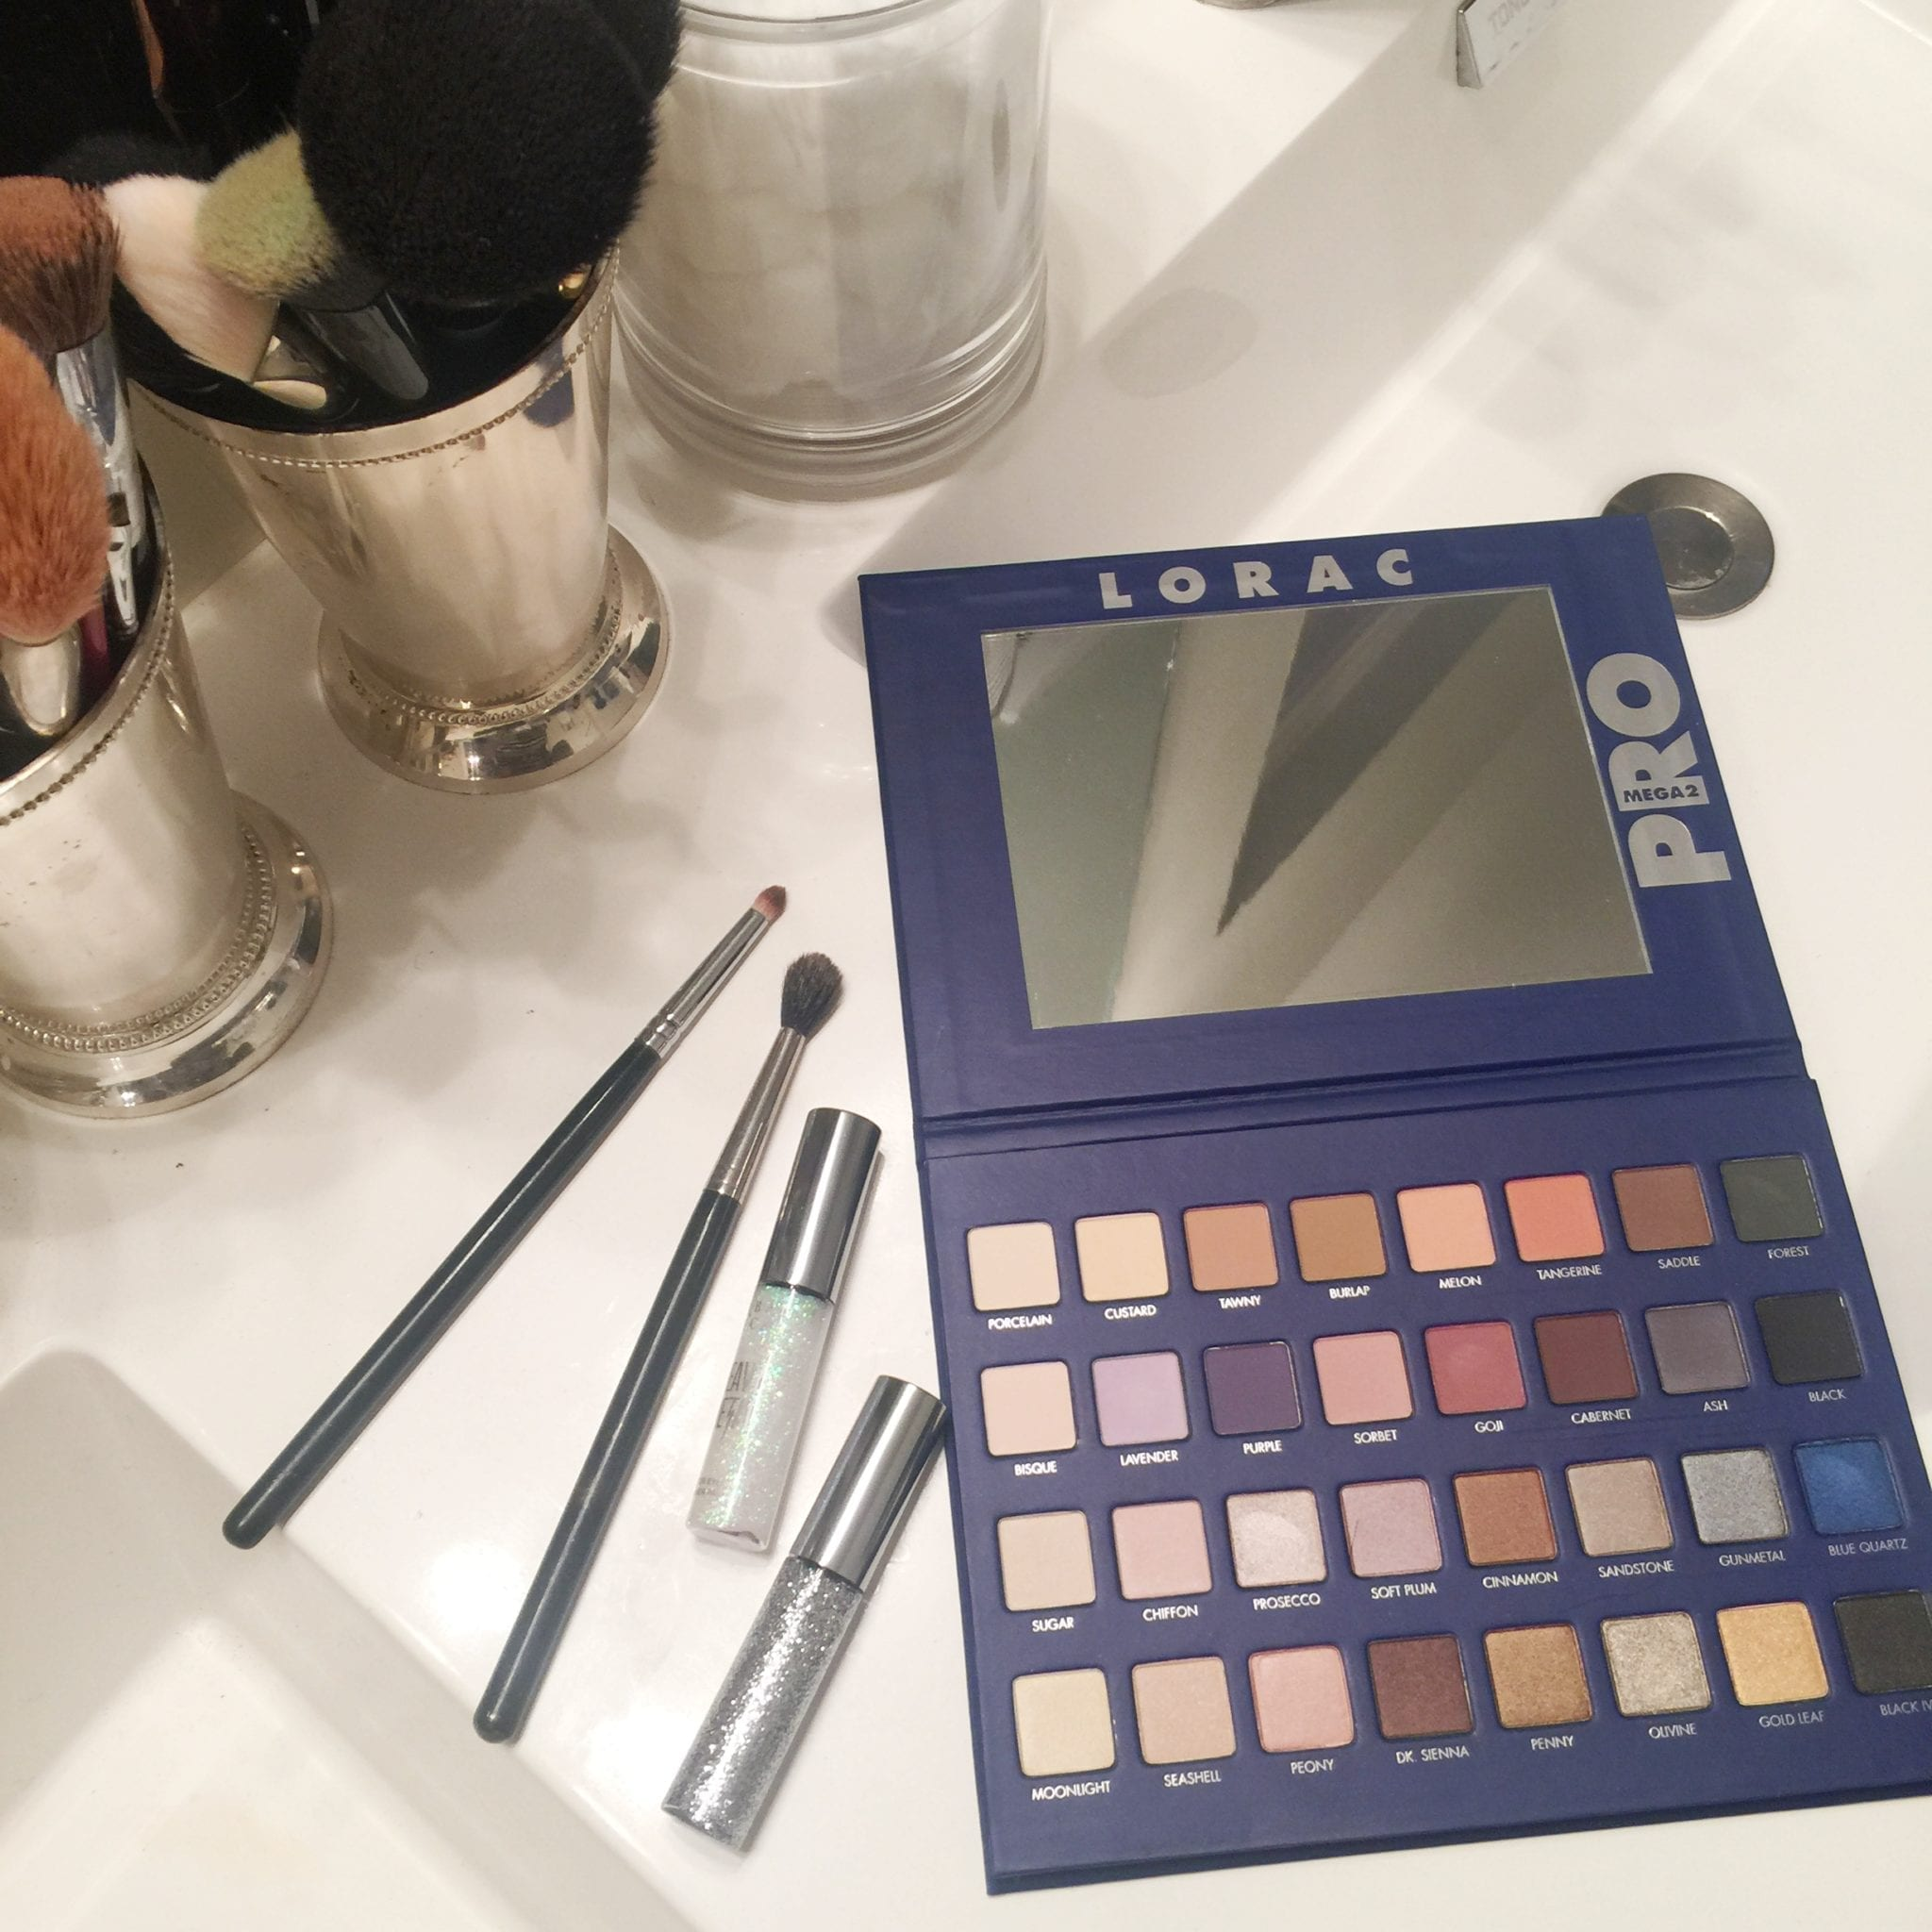 THE BEST LAST MINUTE GIFT IDEAS featured by top San Francisco life and style blog, Just Add Glam: image of Lorac Palette and other Ulta Beauty makeup products